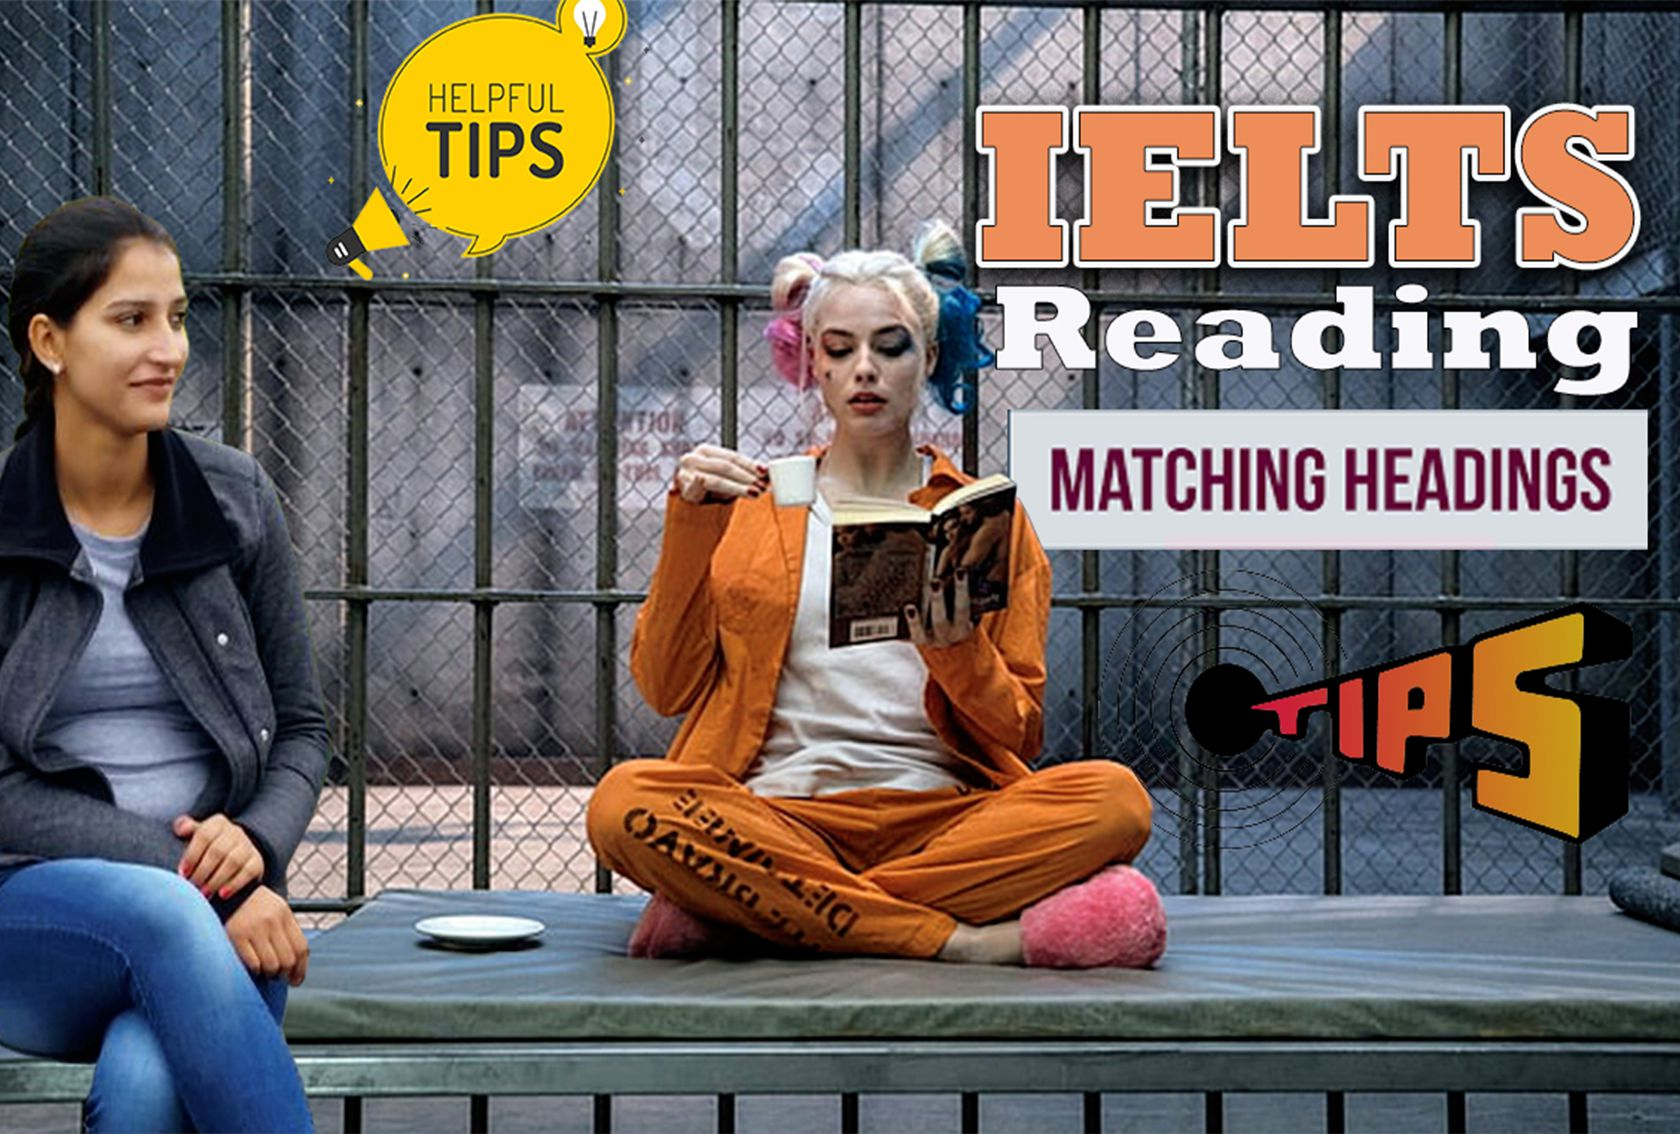 IELTS reading heading tips and tricks | IELTS Reading Hack | Matching Headings